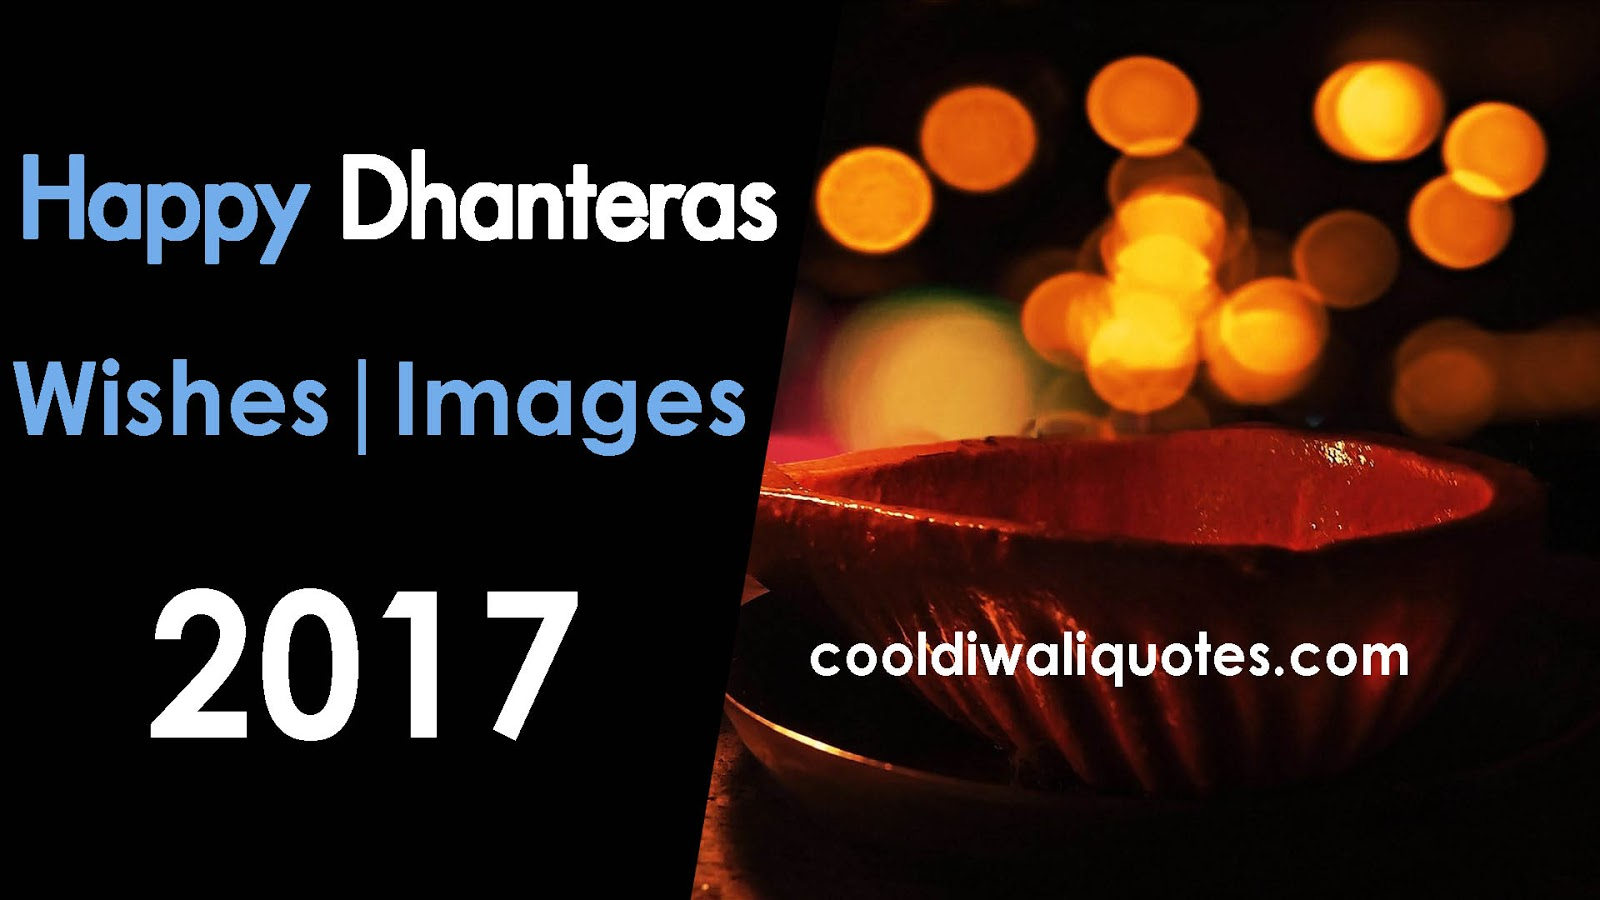 Latest happy dhanteras wishes 2017 quotes hd images sms free latest happy dhanteras wishes 2017 quotes hd images sms free kristyandbryce Gallery